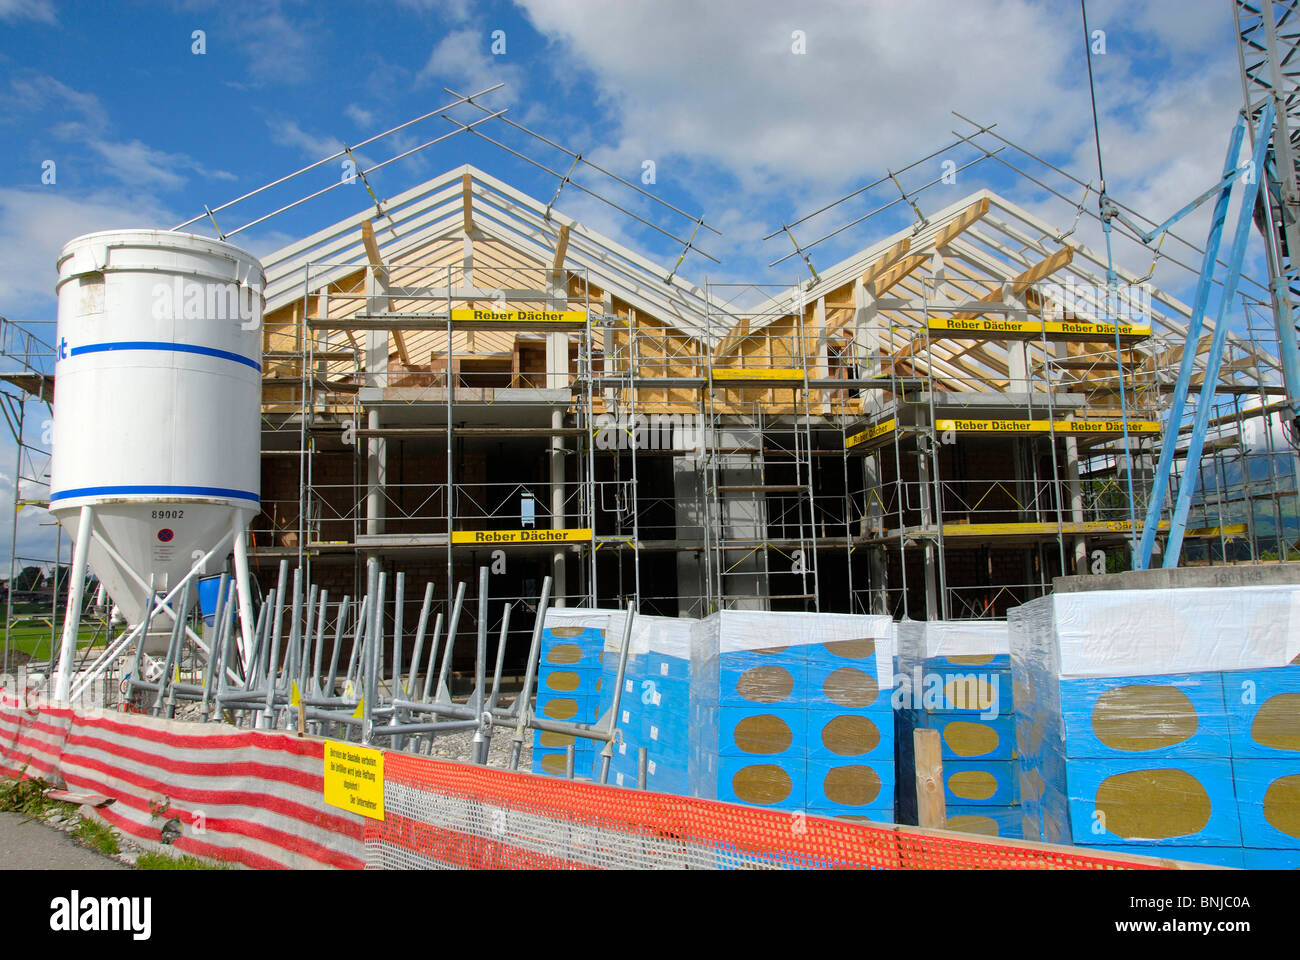 house home building site new building build crane roof shell house home building site new building build crane roof shell position situation wood forest apartment house